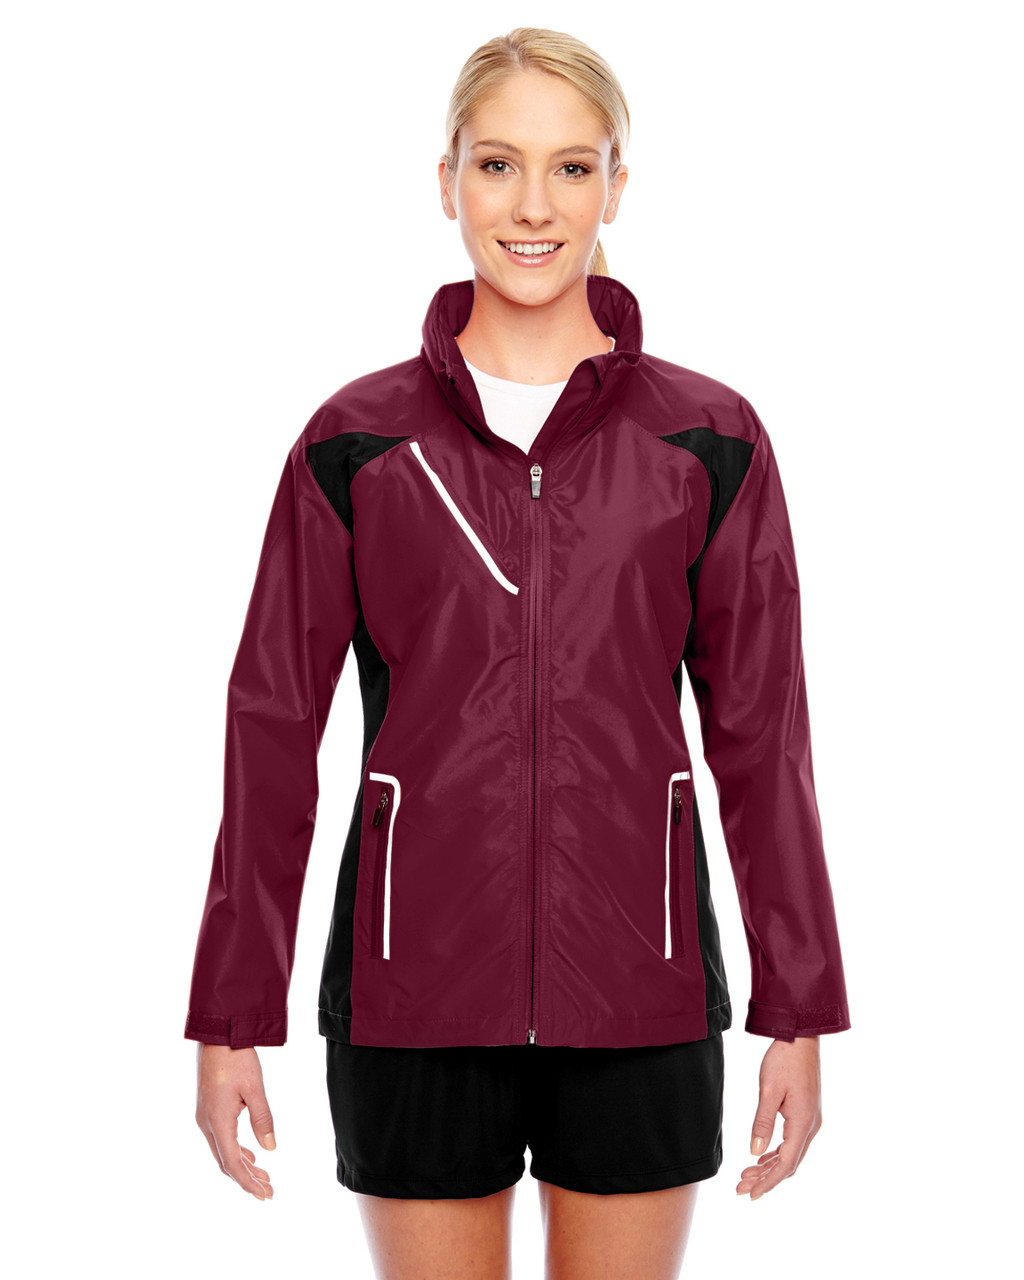 Sport Maroon - TT86W Team 365 Dominator Waterproof Jacket